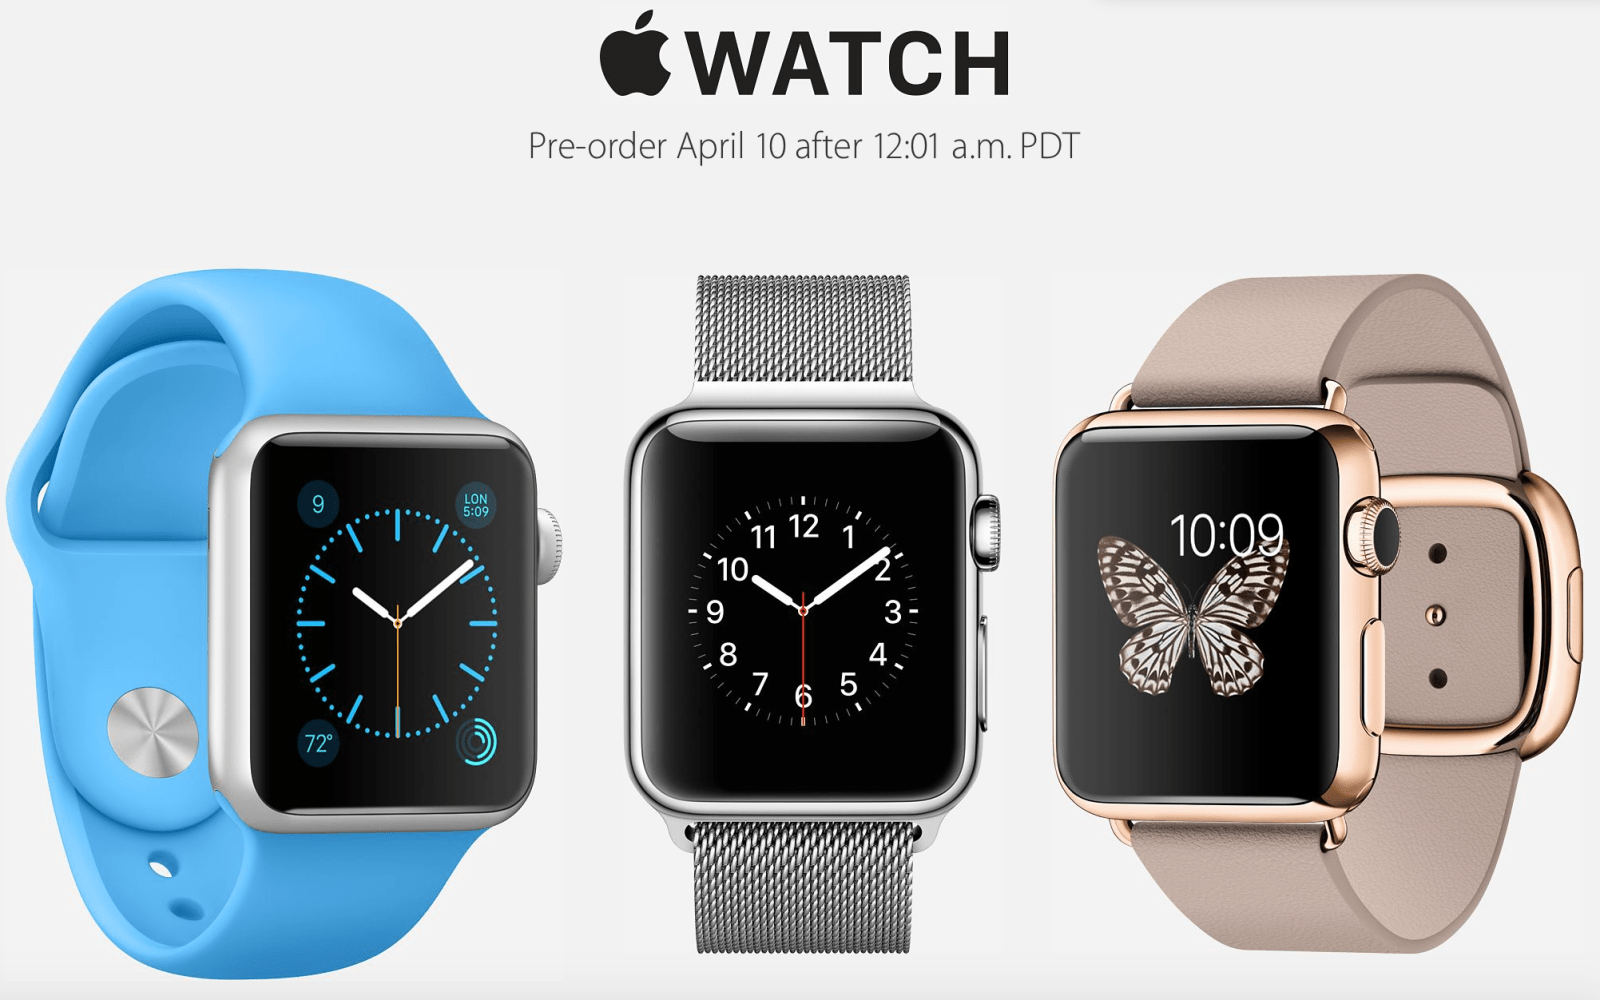 Apple Watch pre-orders will begin at 12:01 PDT on April 10